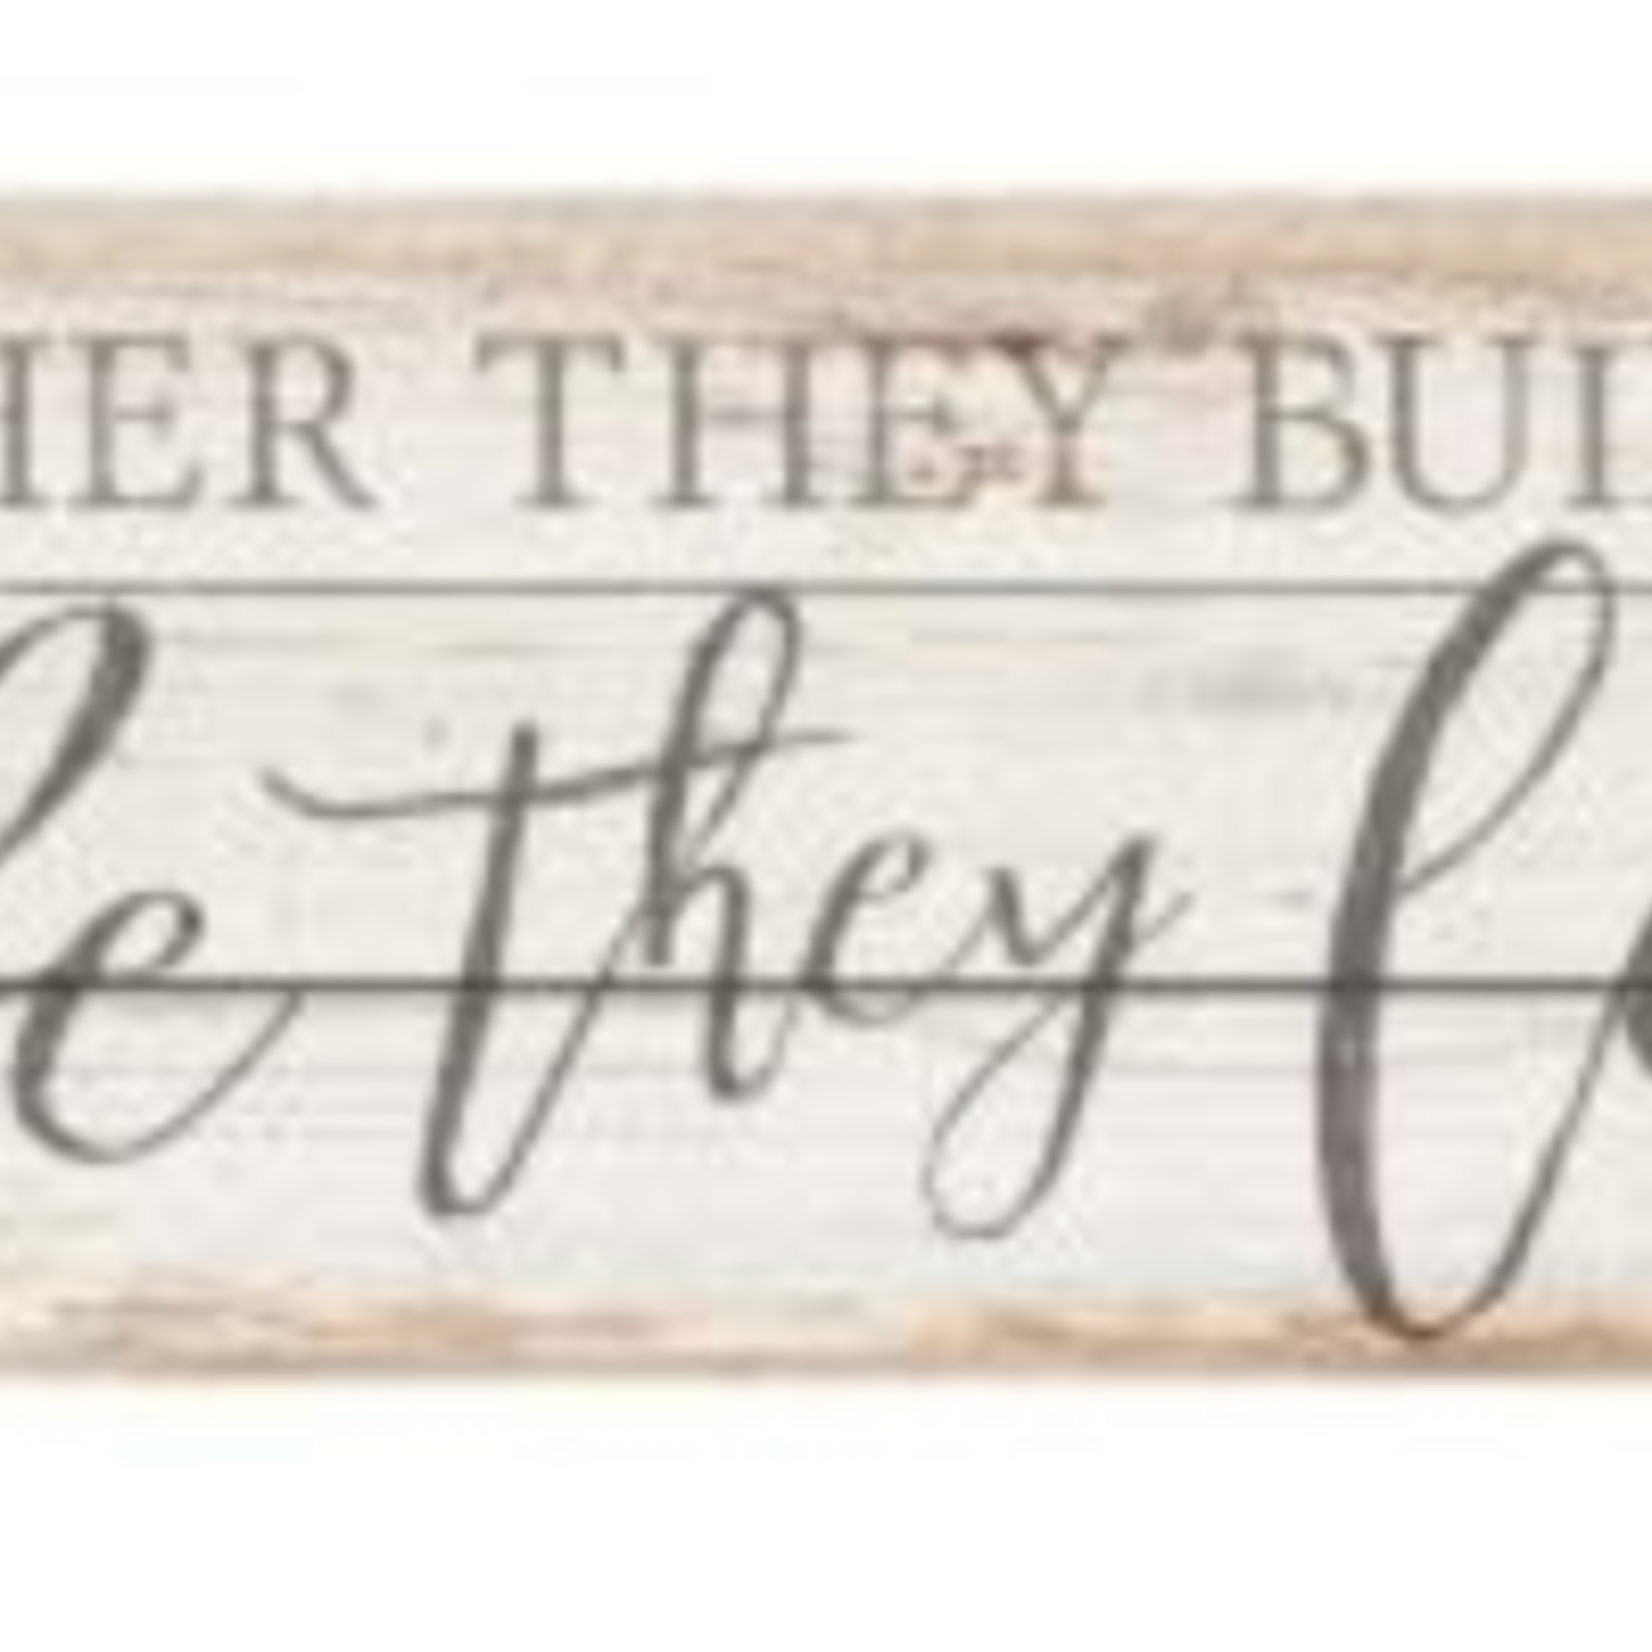 Together They Built A Life They Loved Pallet Sign HPL0004